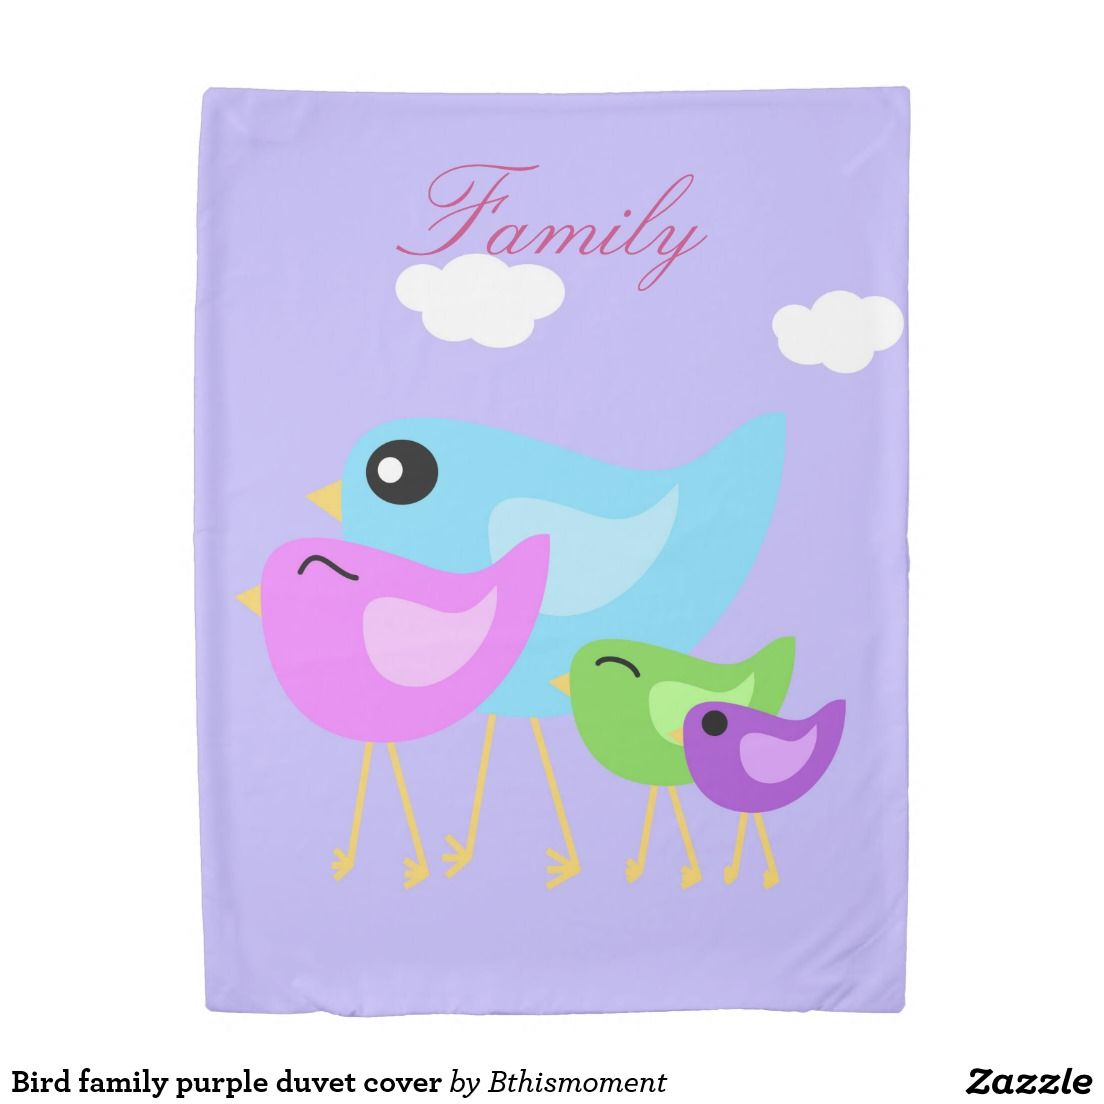 Family is what it's all about with these birds on their lovely pastel purple duvet cover. Fresh spring bedding for easter room decor.